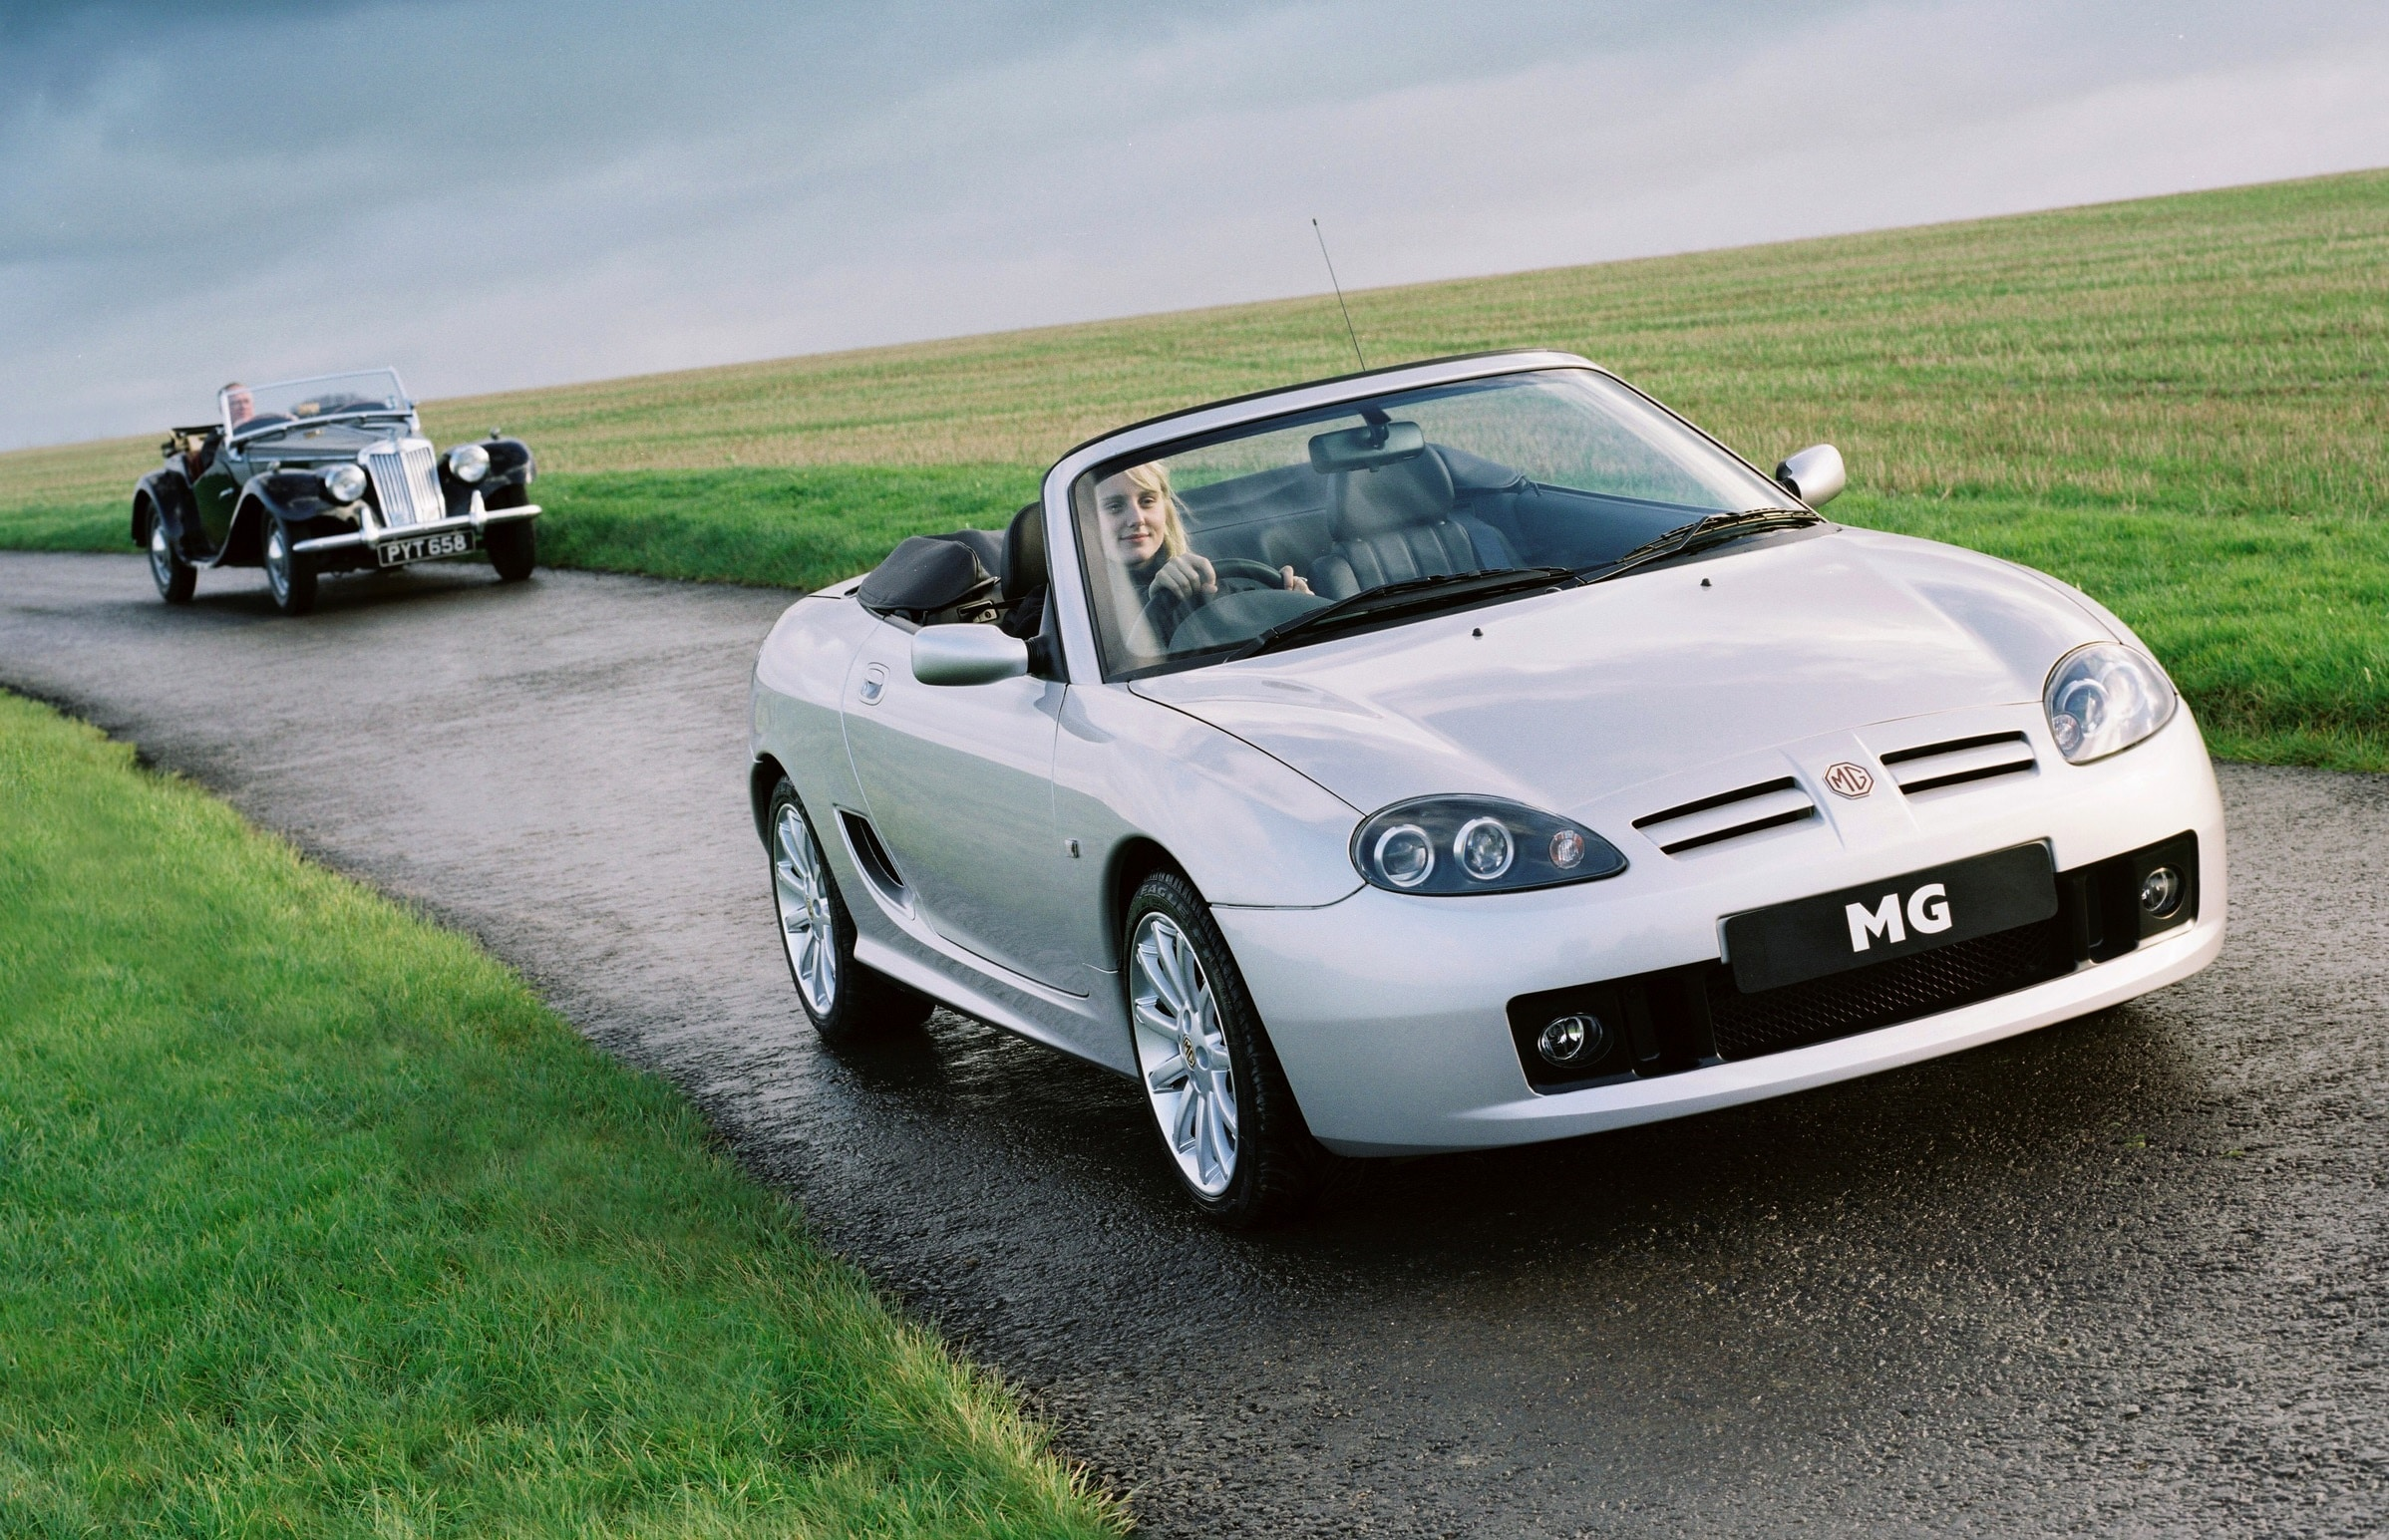 MG TF, MG, TF, MGF, sports car, sportscar, mid-engine, K series, British car, classic car, retro car, old car, convertible, car club, rear-wheel drive, Longbridge, Rover, car, cars, ebay, ebay motors, autotrader